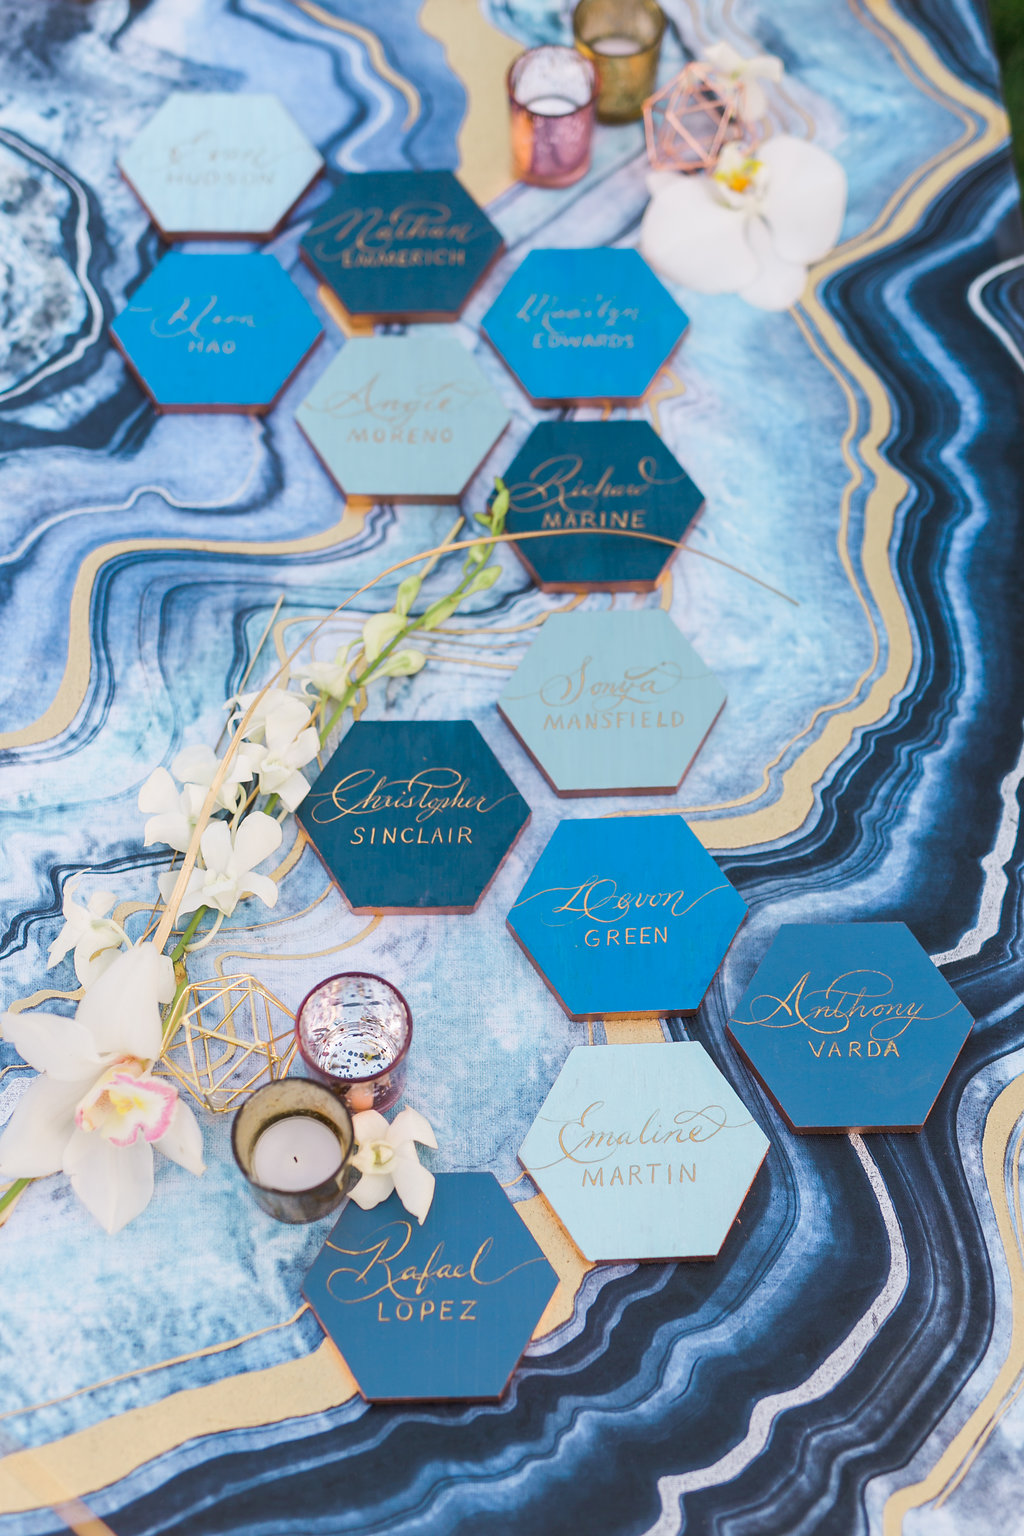 The escort cards were a favorite project and started with gray hexagon tiles that I painted in different shades of blue and gold paint around the edge. The look was completed with beautiful hand painted calligraphy by Olivia of Handcrafted Occasions with a marble like blue and gold canvas painting as a backdrop.